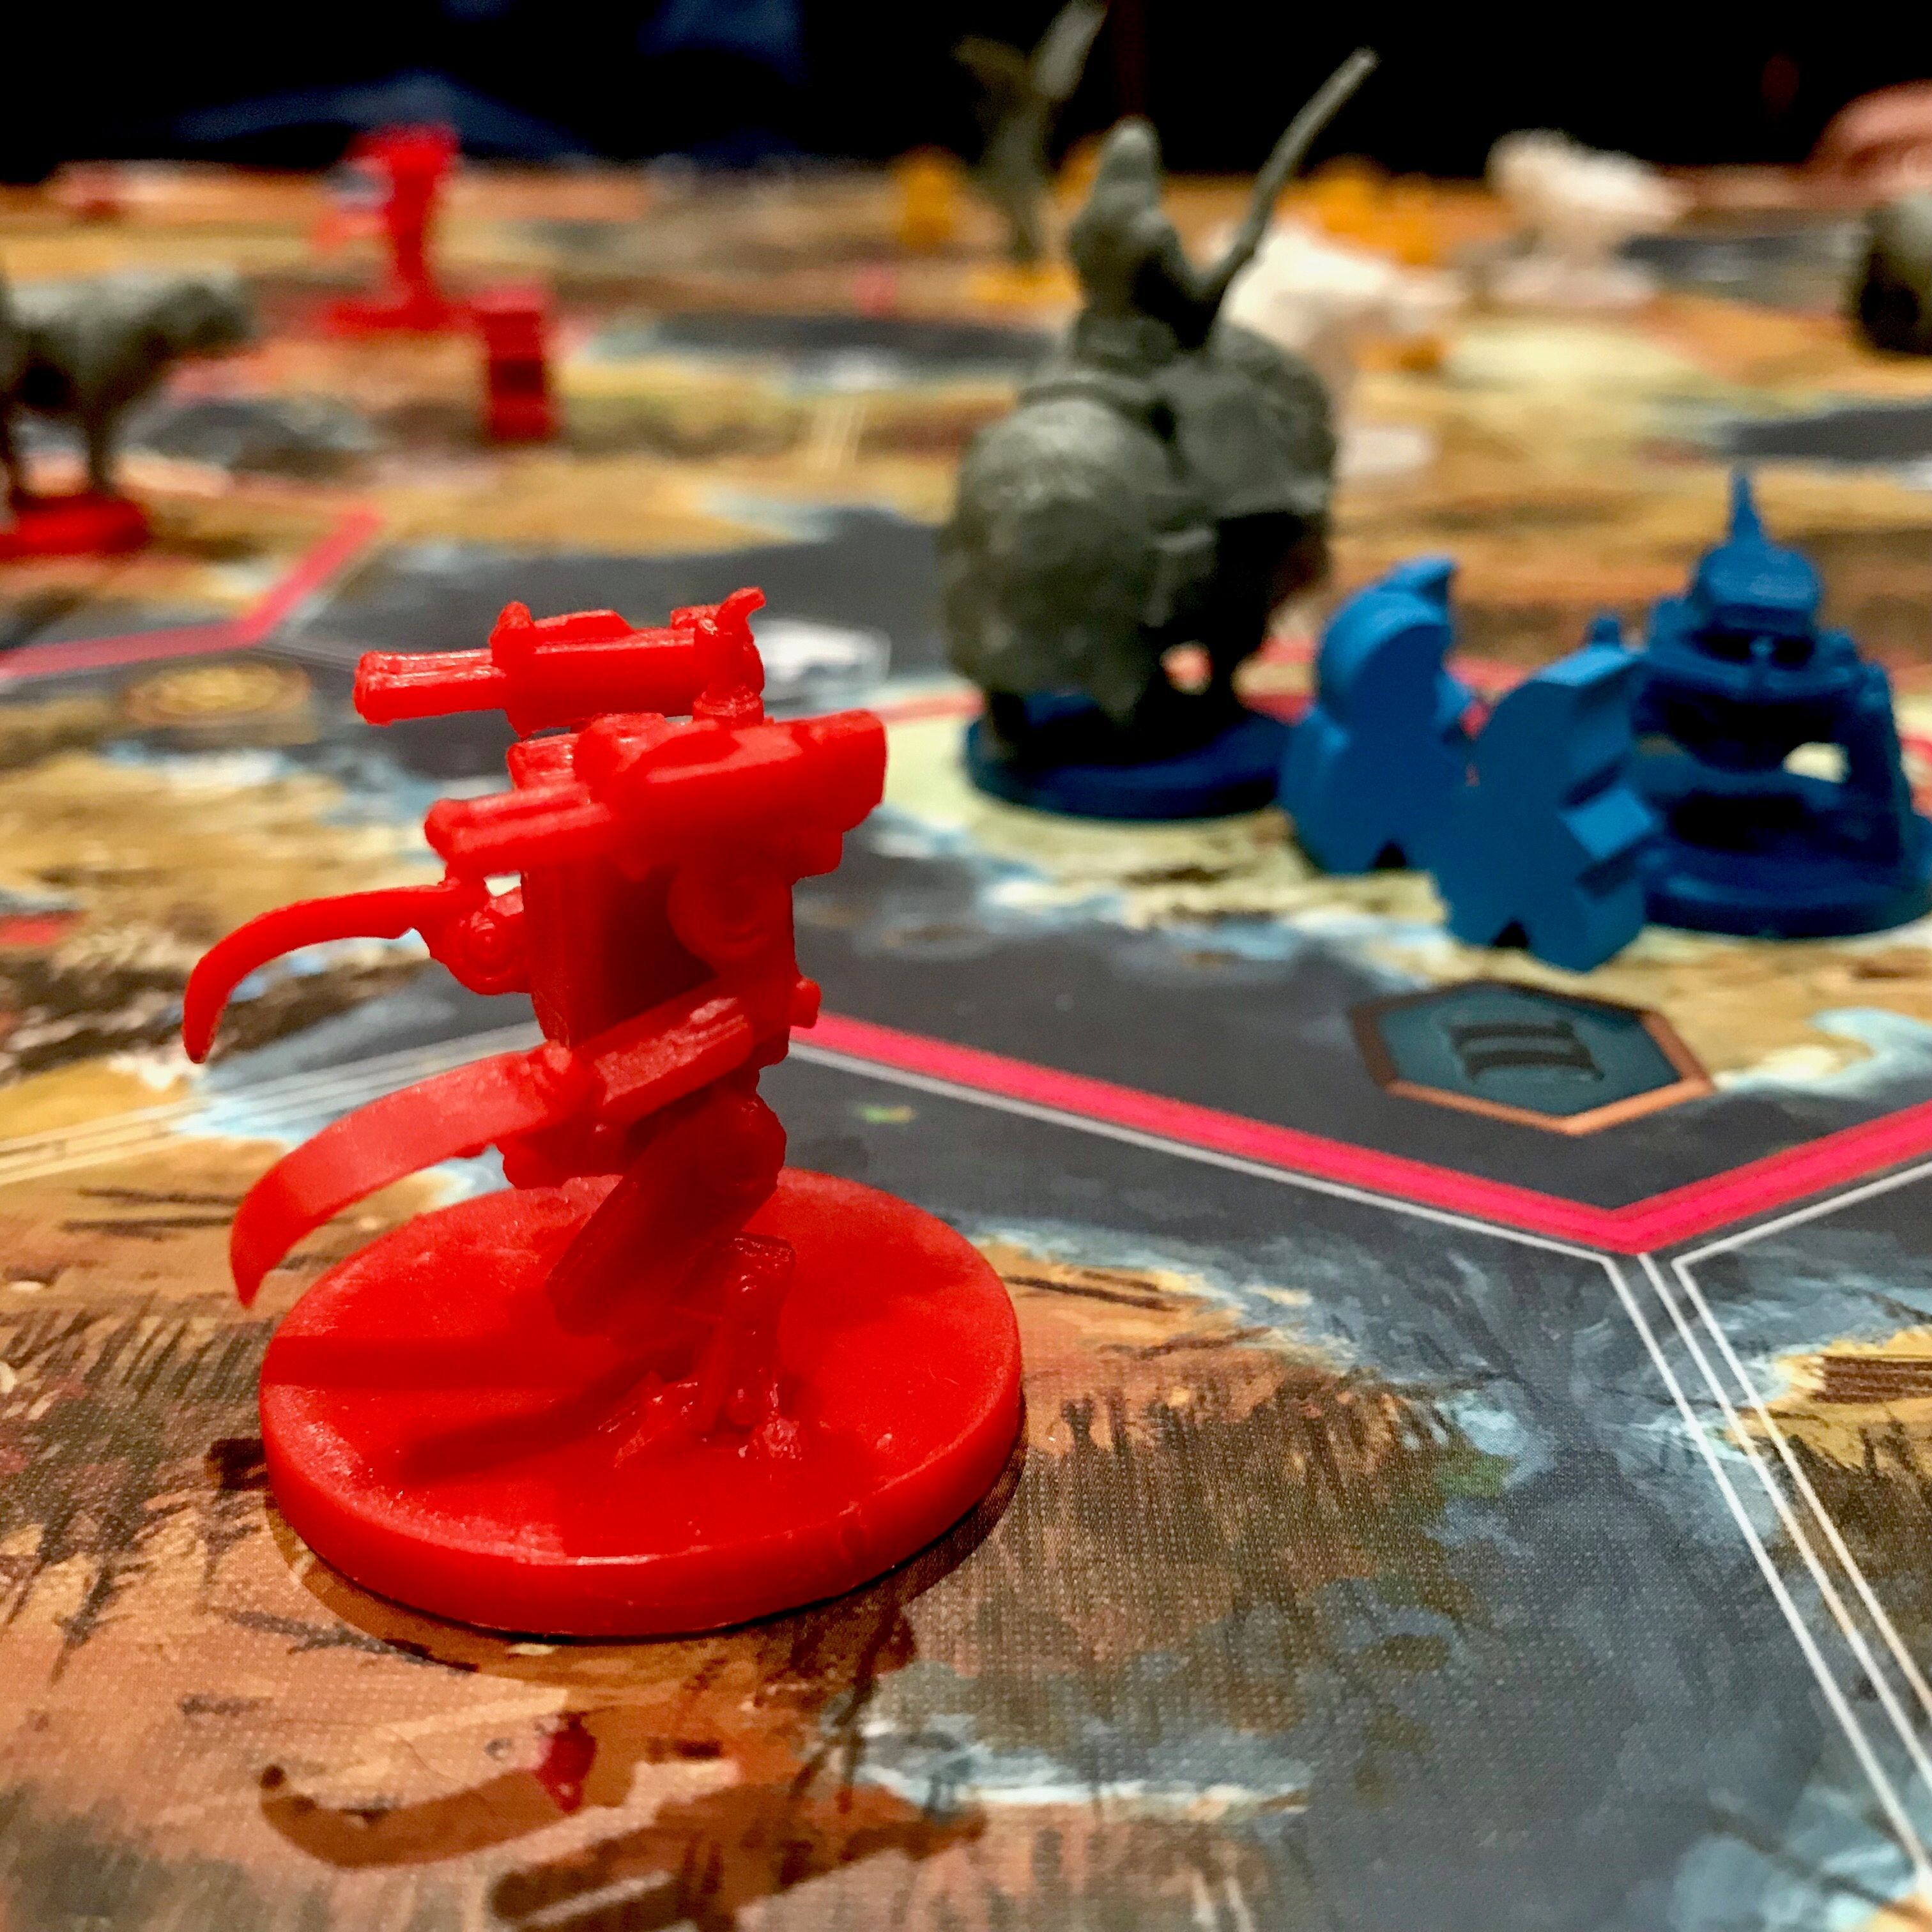 Scythe one of the biggest and best strategy board games